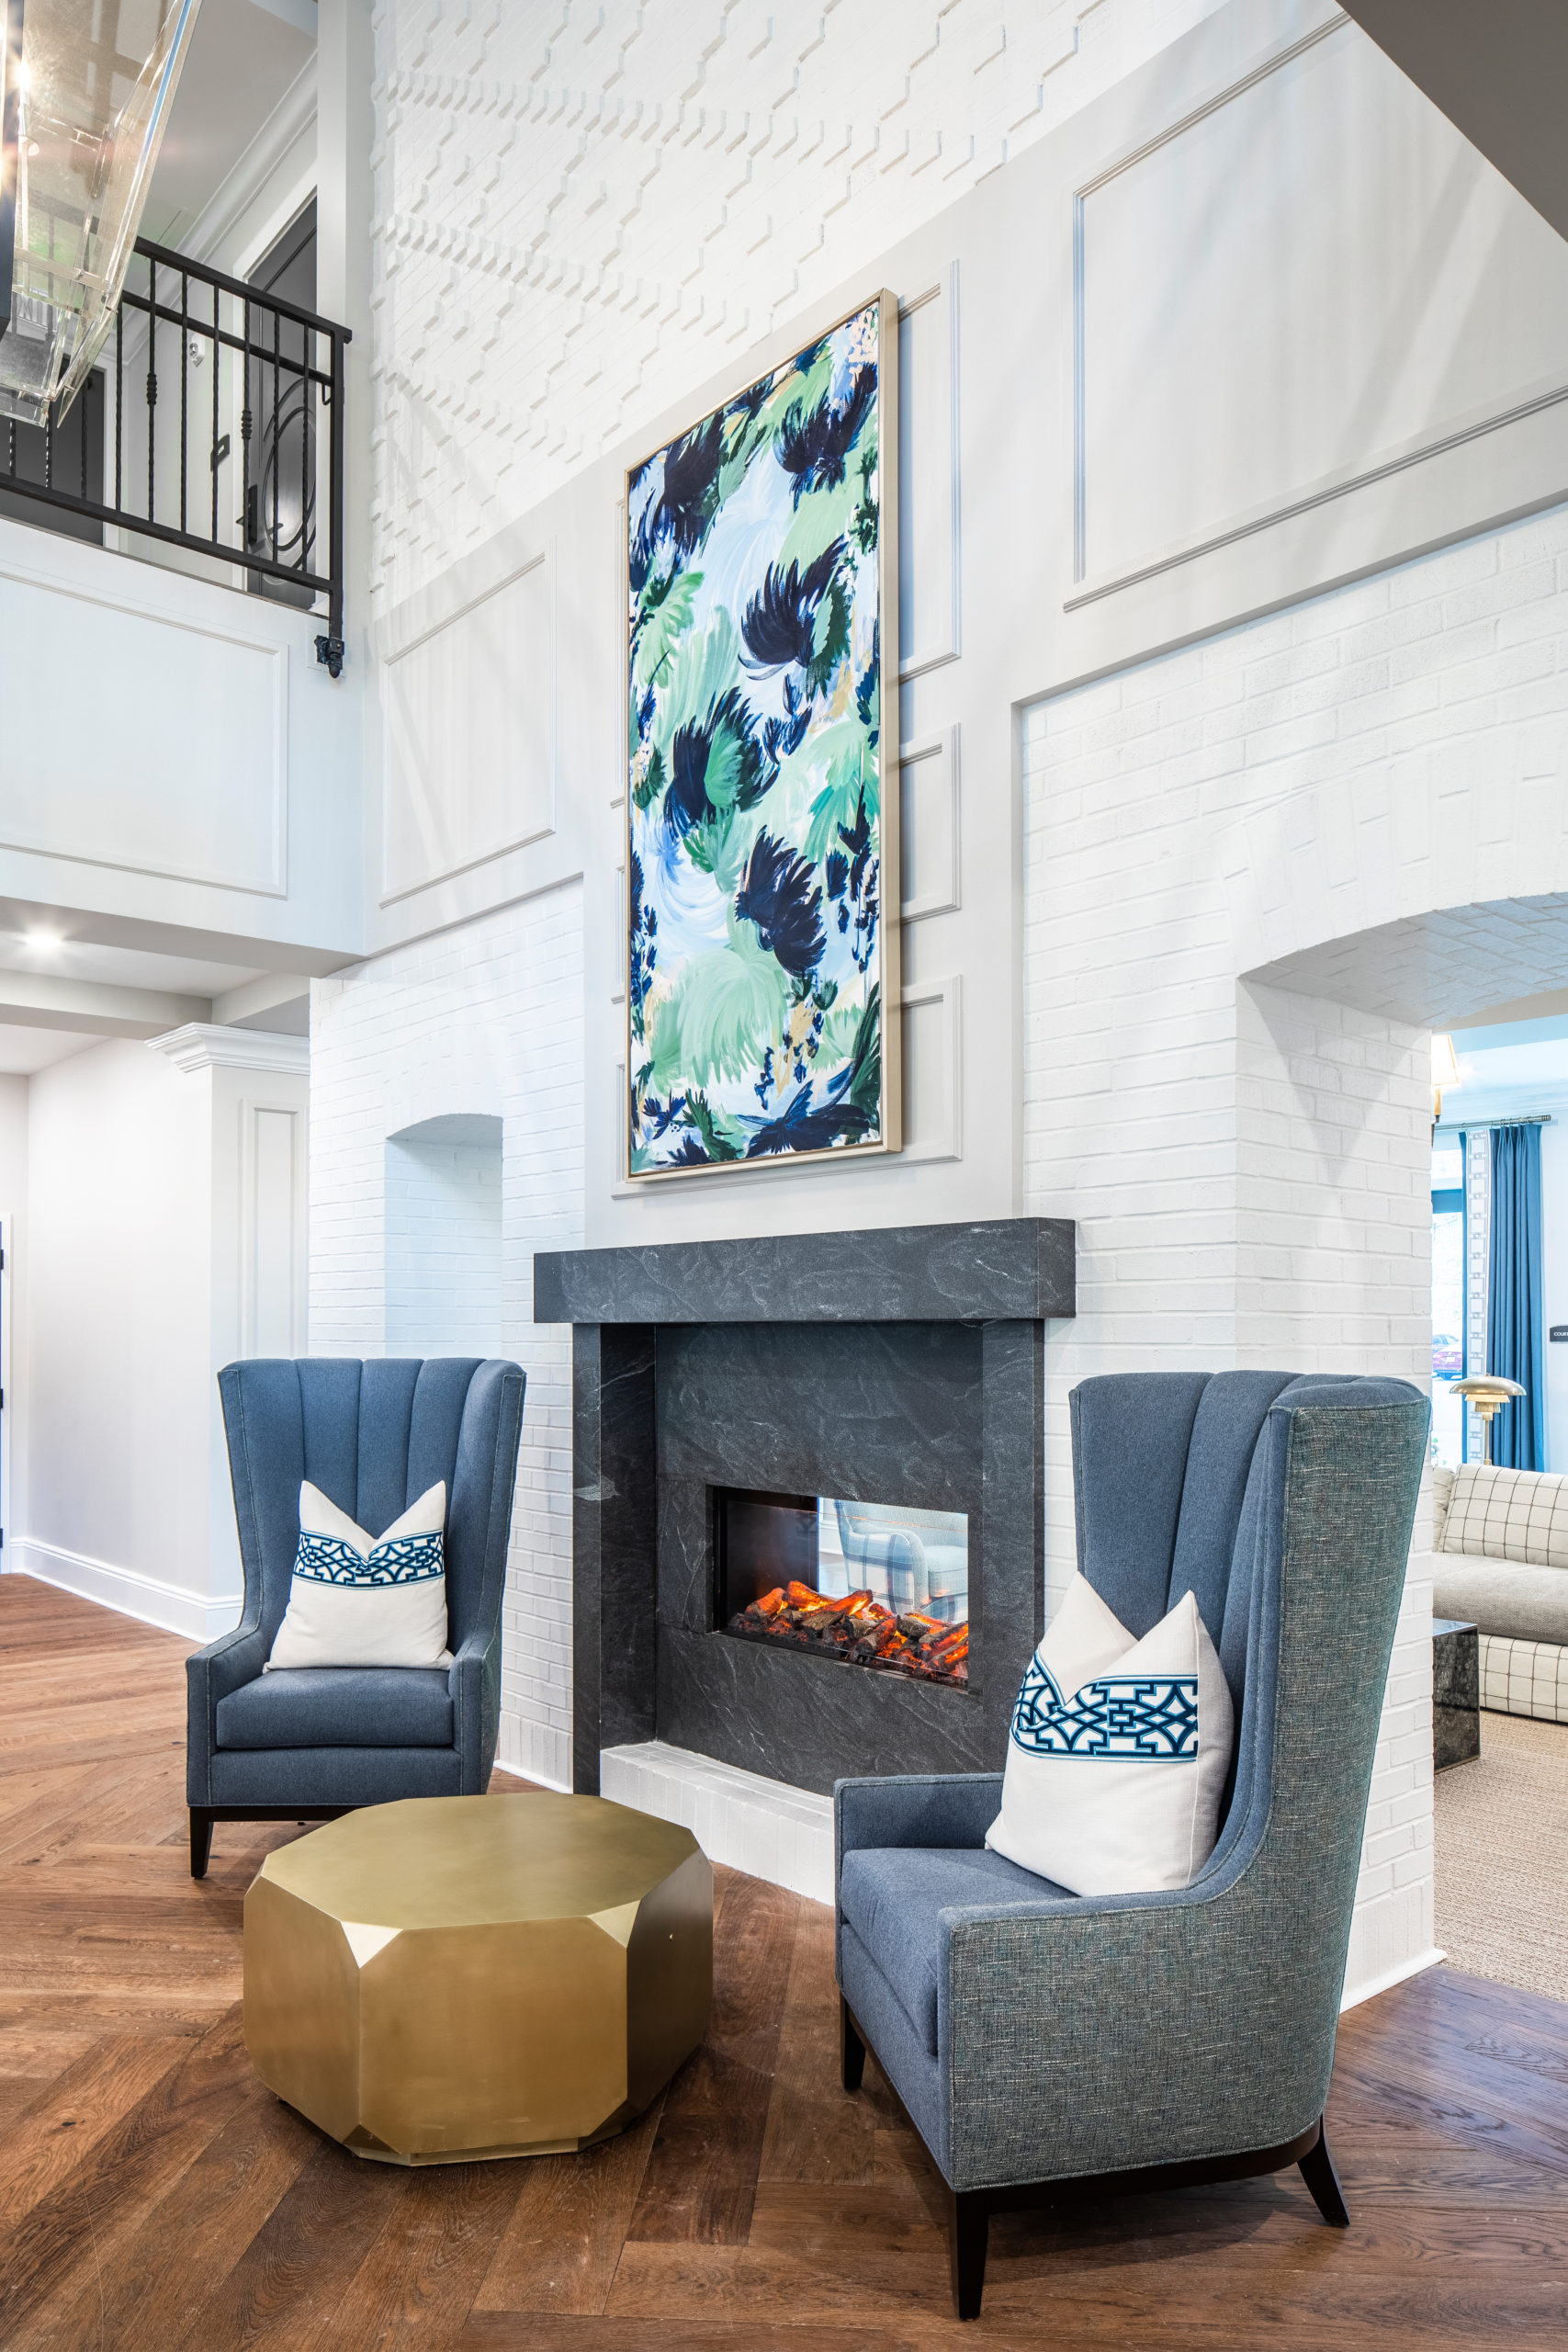 Longleaf foyer with gray see-through fireplace, blue chairs, gold table and blue/green painting on white wall